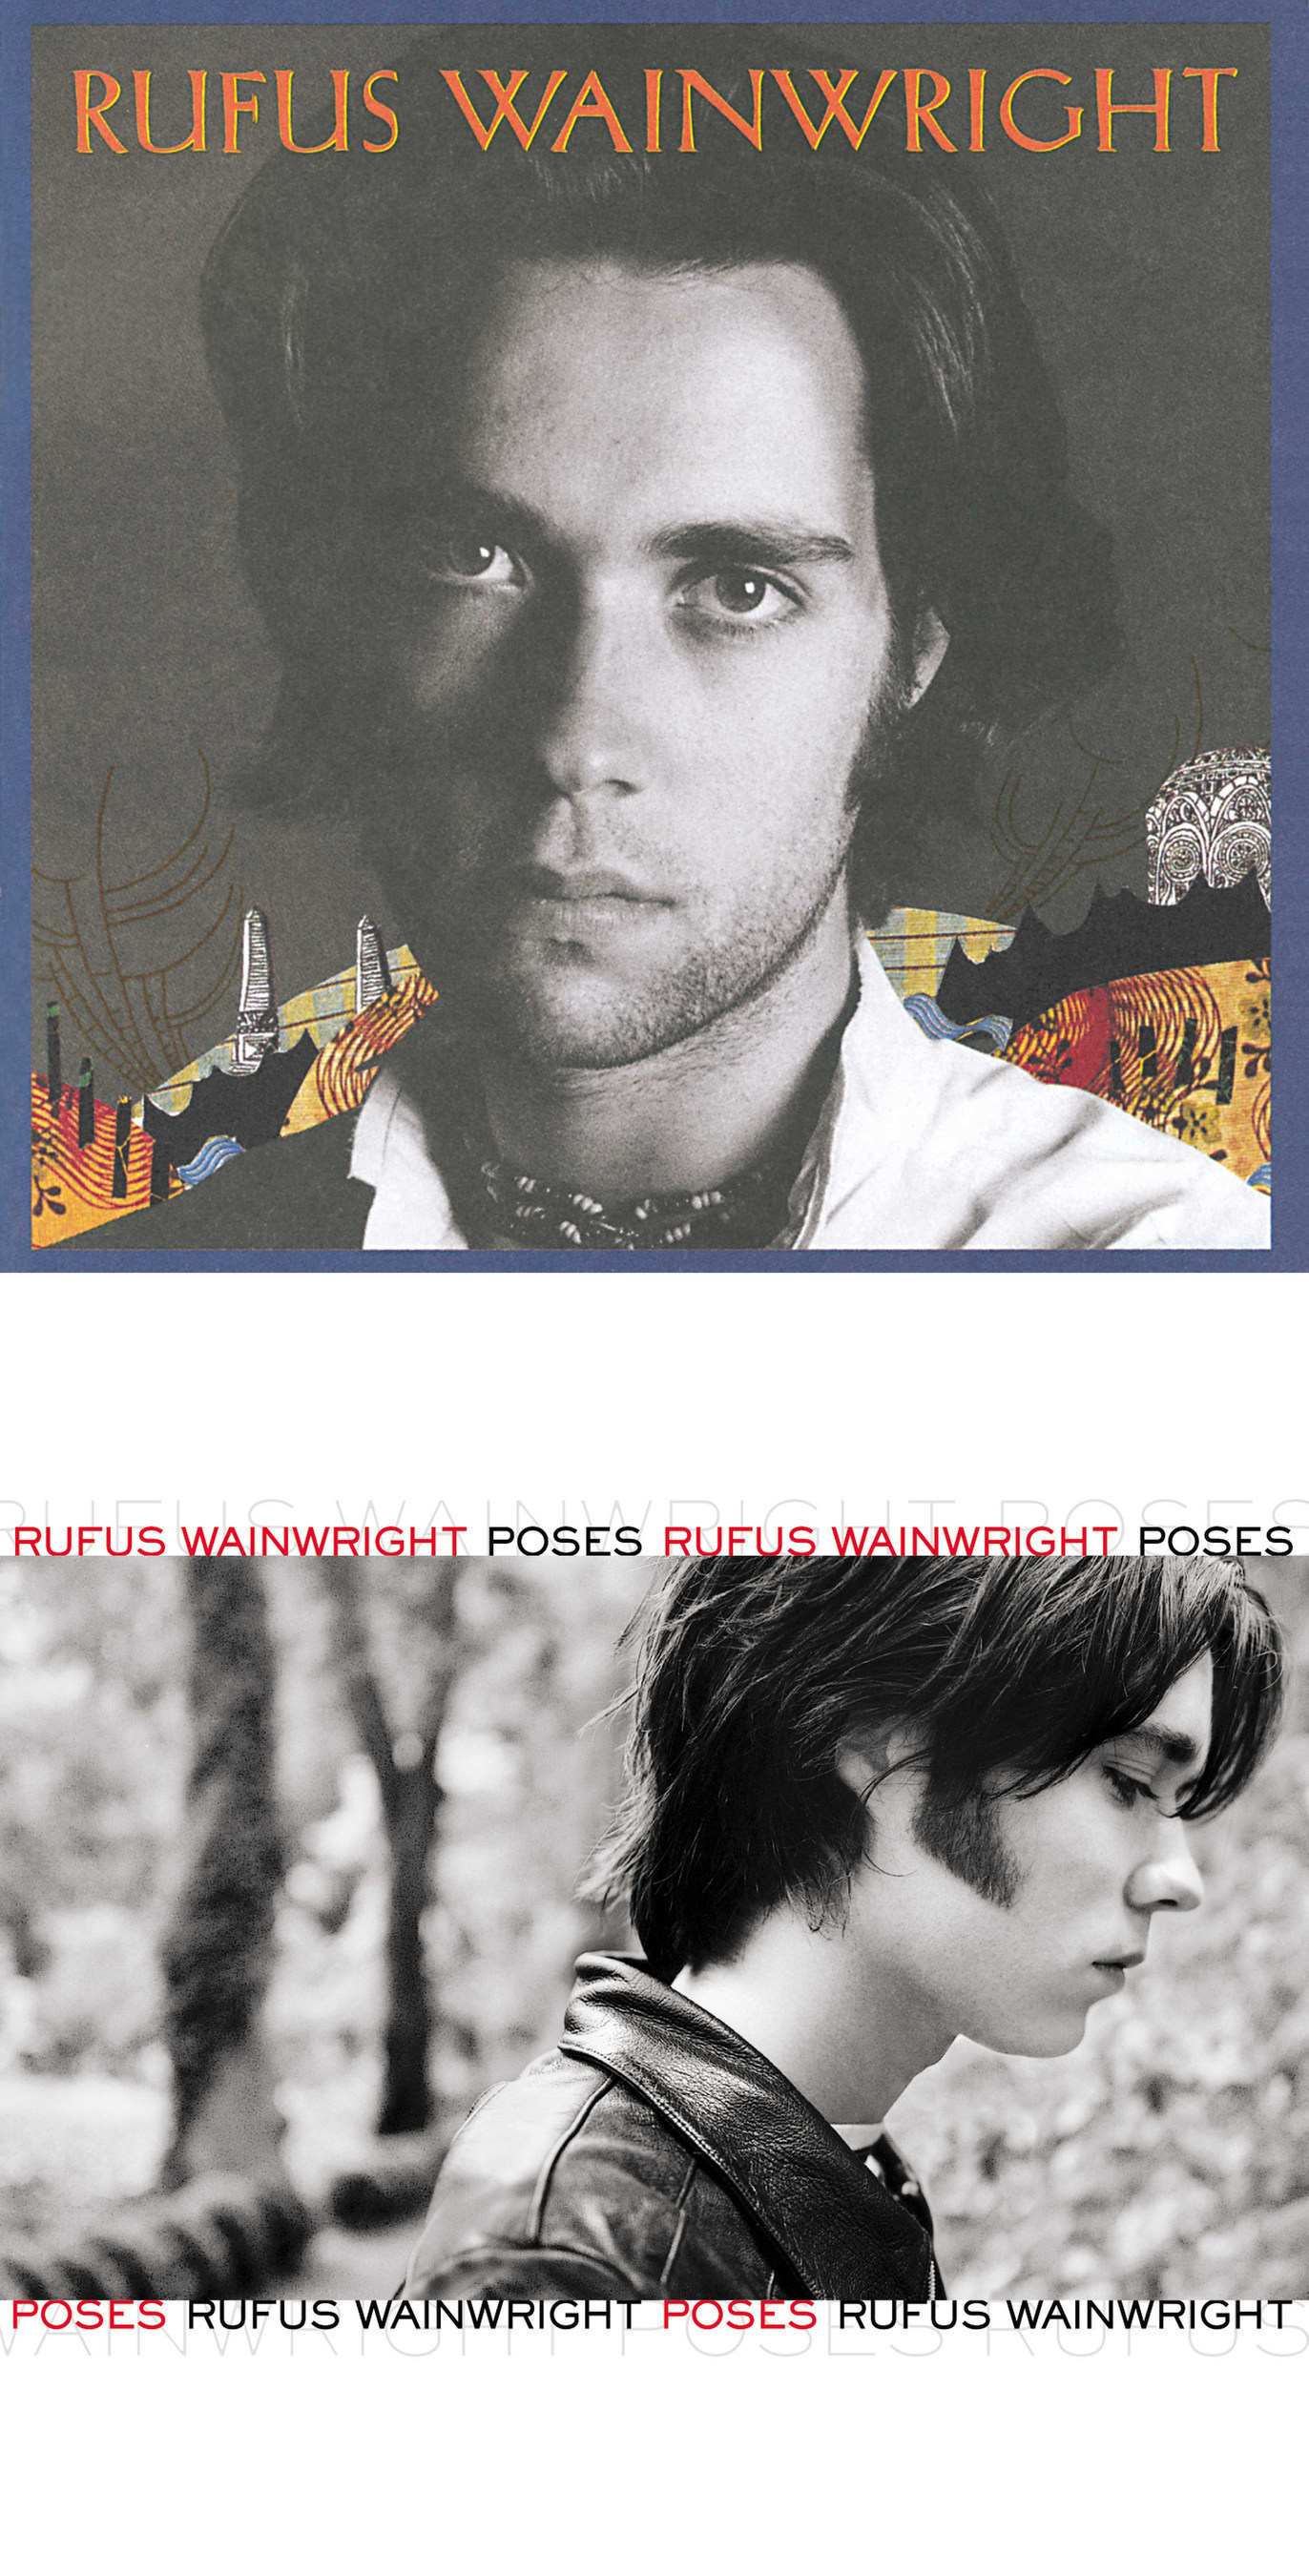 """Rufus Wainwright's acclaimed debut album, 'Rufus Wainwright,' and his sophomore album, 'Poses,' will each be released in 2LP vinyl editions in gatefold packaging on May 6 by Geffen/UMe. Recognized by Rolling Stone as one 1998's best albums, 'Rufus Wainwright' is highly sought after on vinyl, as it has never been widely released on LP. Selected by NME as a Top 10 album of 2001, 'Poses' features """"Cigarettes and Chocolate Milk"""" and Wainwright's stirring cover of Lennon/McCartney's """"Across The Universe."""" The 2LP release of 'Poses' marks the album's vinyl debut worldwide."""